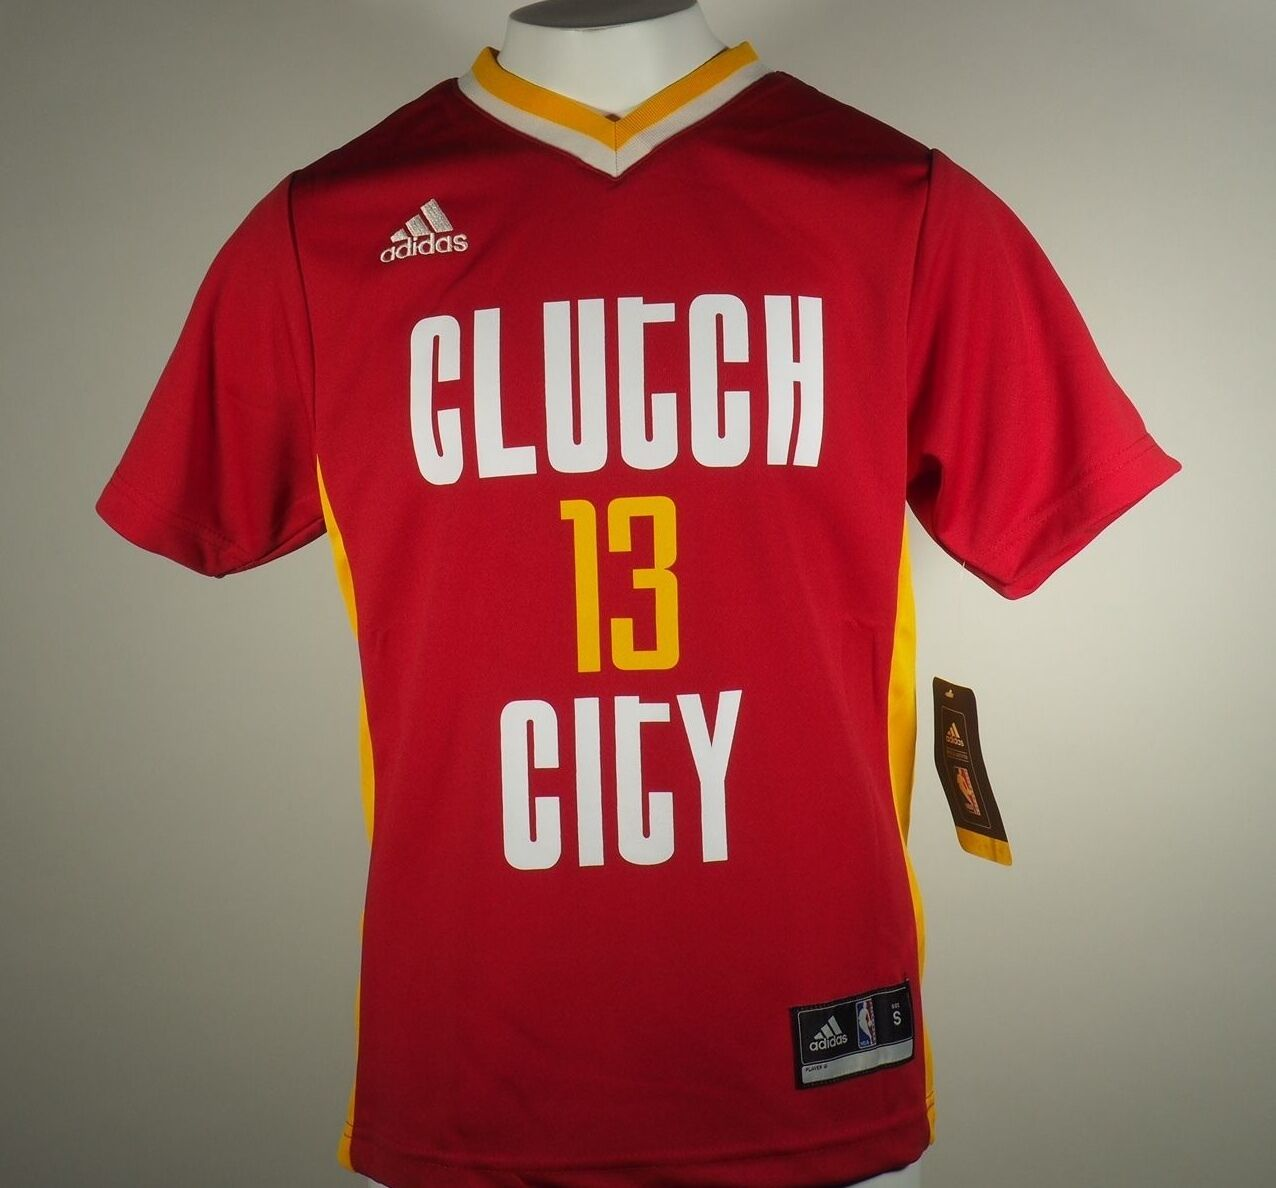 Youth Size James Harden Clutch City